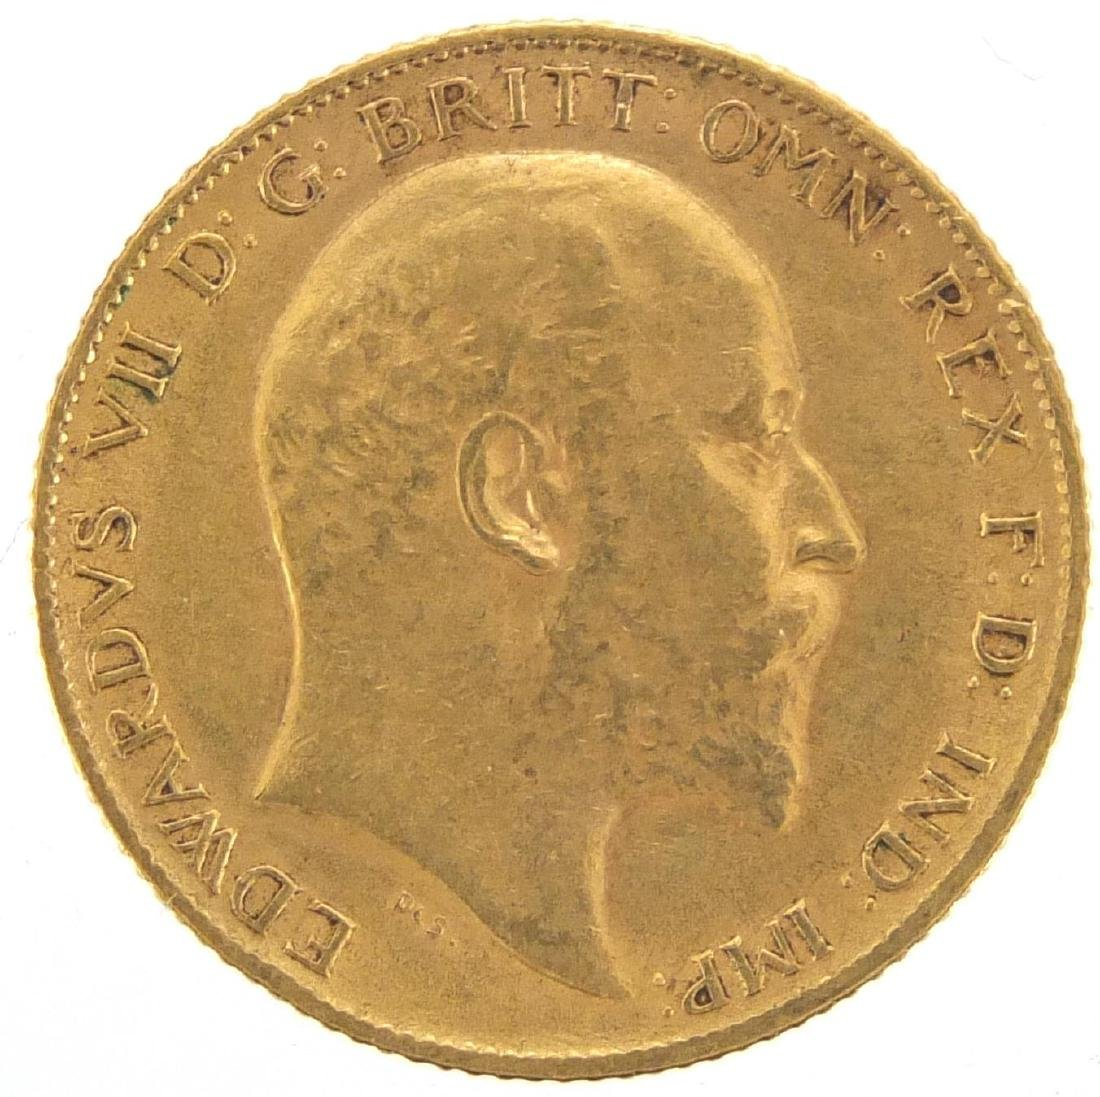 Edward VII 1905 gold half sovereign Further condition reports can be found at the auctioneers